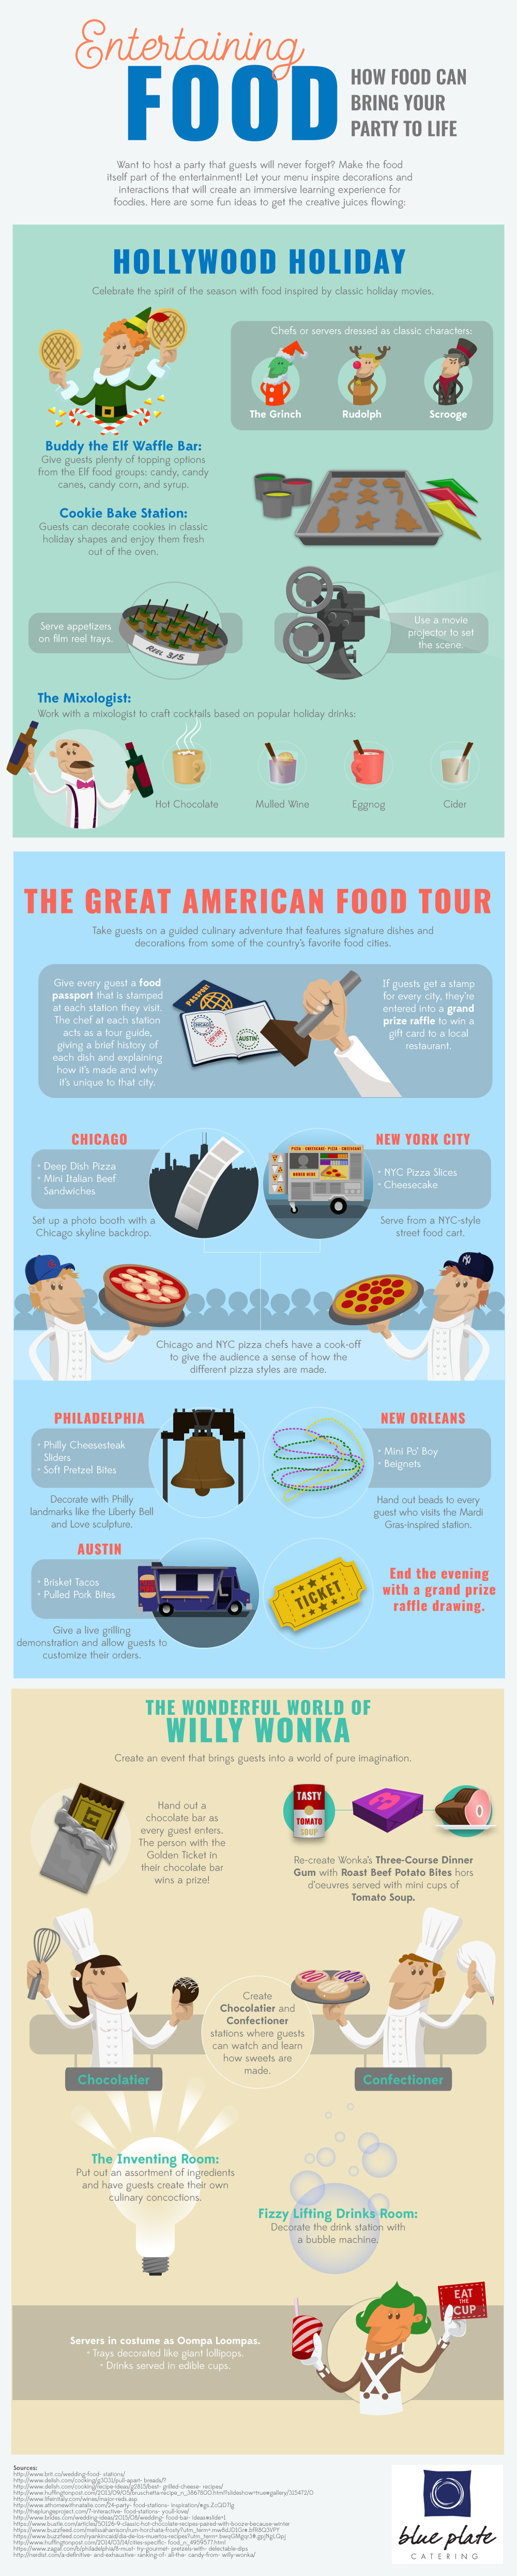 food-as-entertainment-infographic